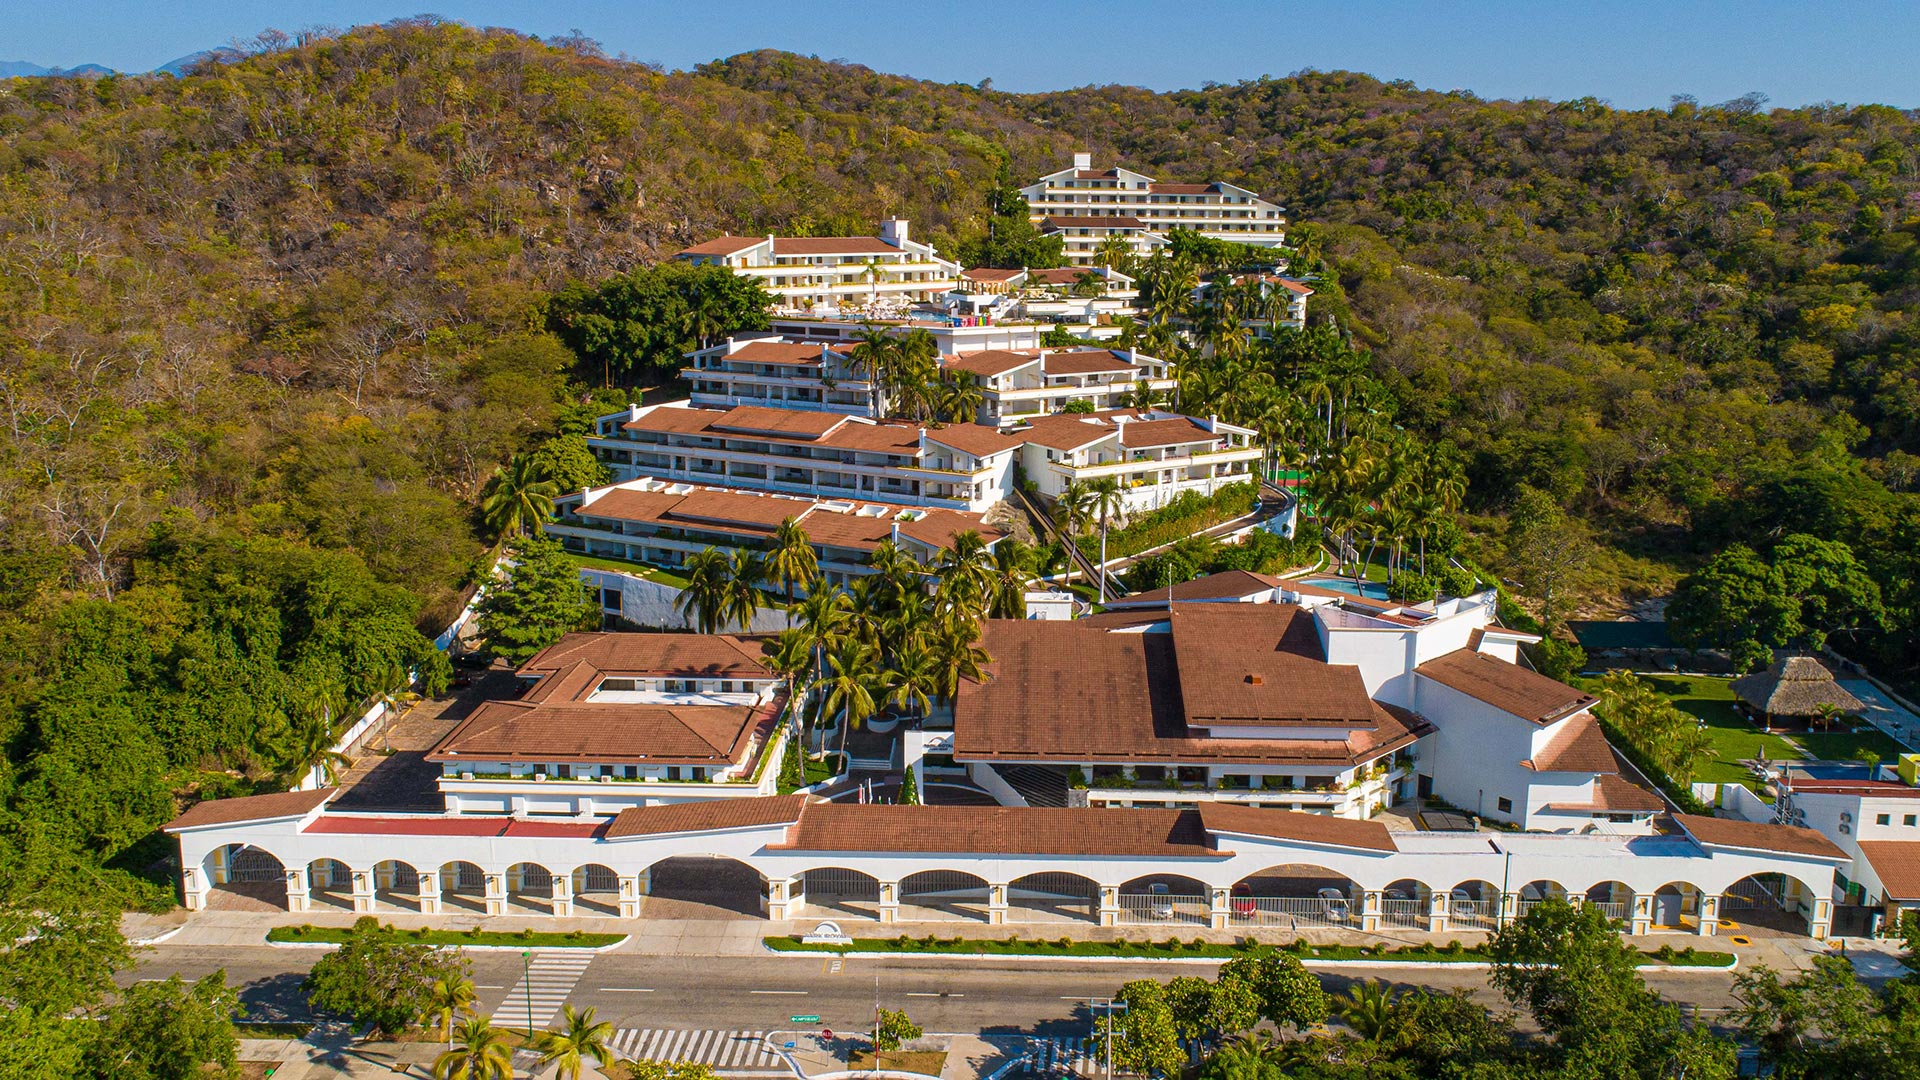 Park-Royal-Beach-Huatulco-vista-general